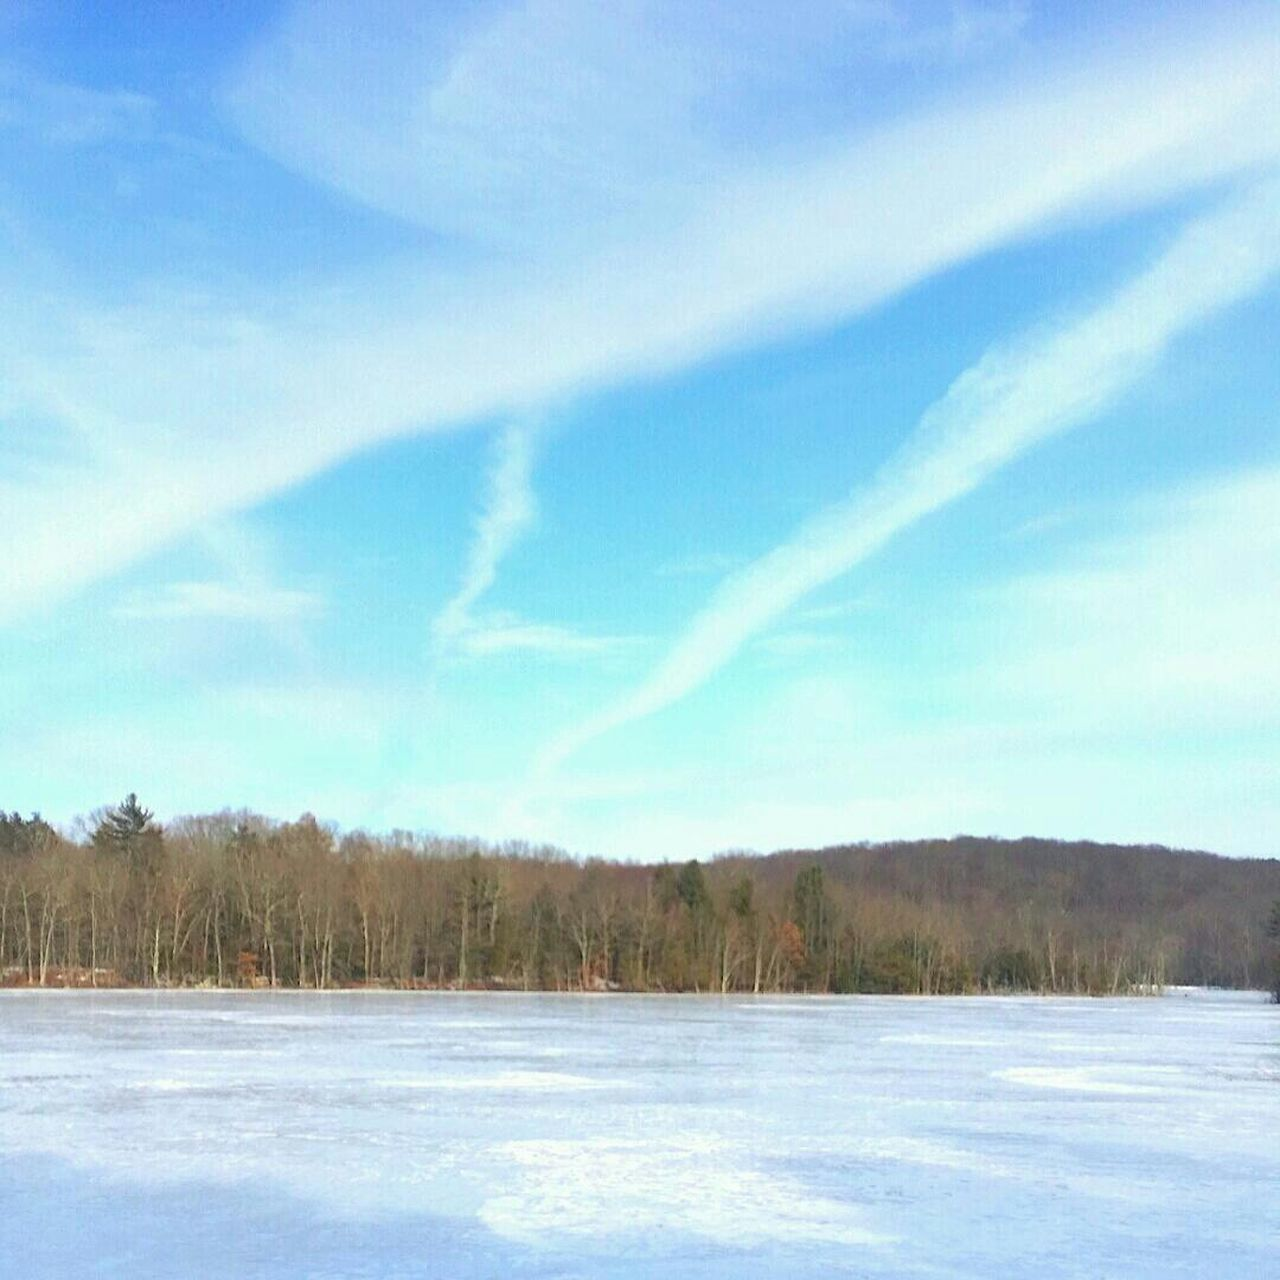 Cloudy Sky Above Frozen Lake